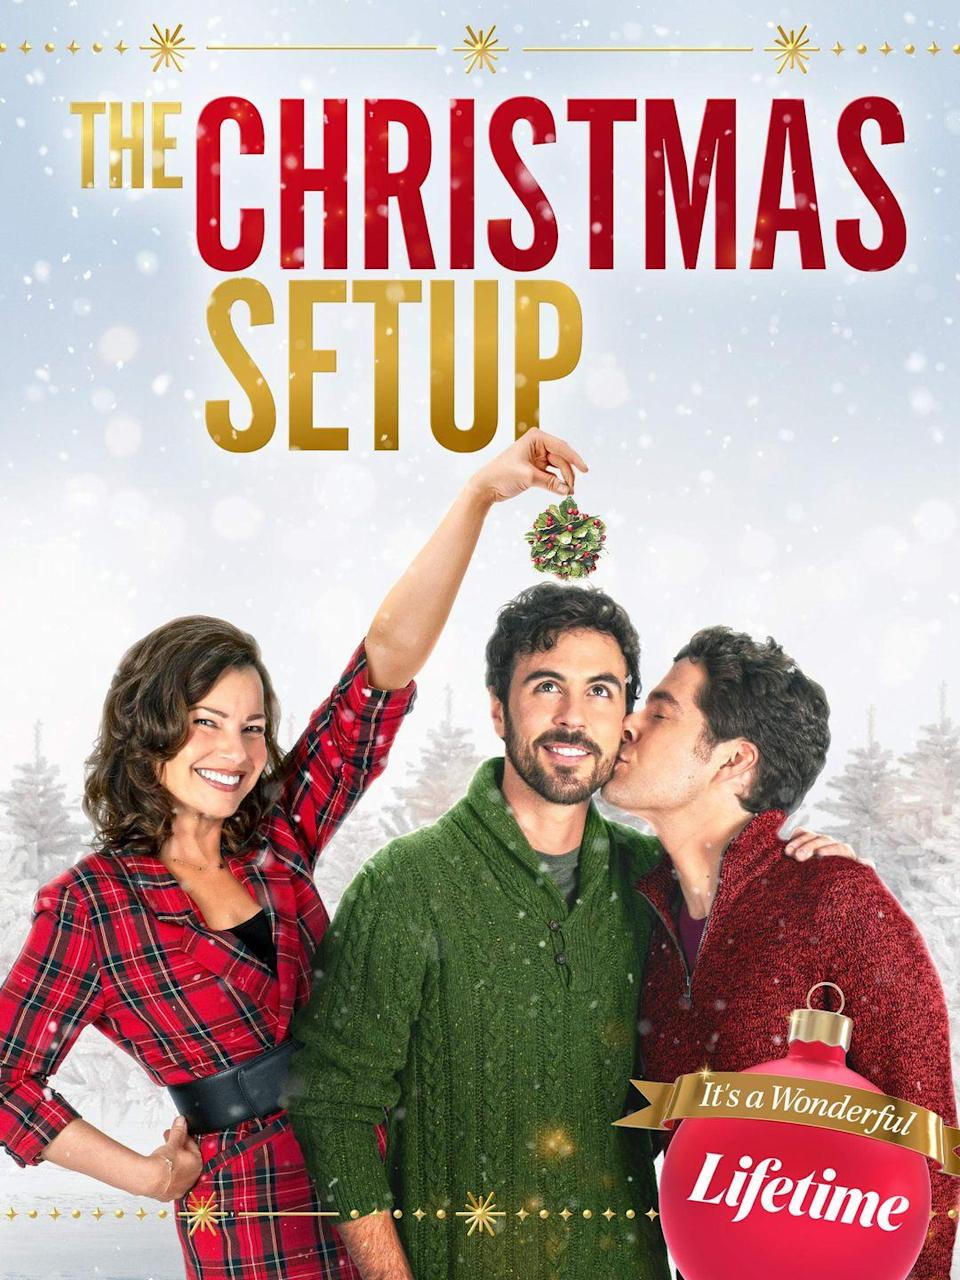 """<p>When New York lawyer Hugo heads to Milwaukee with his best friend Madelyn for the holidays, he's surprised to run into his old crush Hugo. As they enjoy the holidays together, he must consider whether he wants to pursue a big promotion or his budding relationship.</p><p><a class=""""link rapid-noclick-resp"""" href=""""https://www.amazon.com/Christmas-Setup-Inc-MarVista-Entertainment/dp/B08QGMFPQG/?tag=syn-yahoo-20&ascsubtag=%5Bartid%7C10070.g.29702471%5Bsrc%7Cyahoo-us"""" rel=""""nofollow noopener"""" target=""""_blank"""" data-ylk=""""slk:STREAM NOW"""">STREAM NOW</a></p>"""